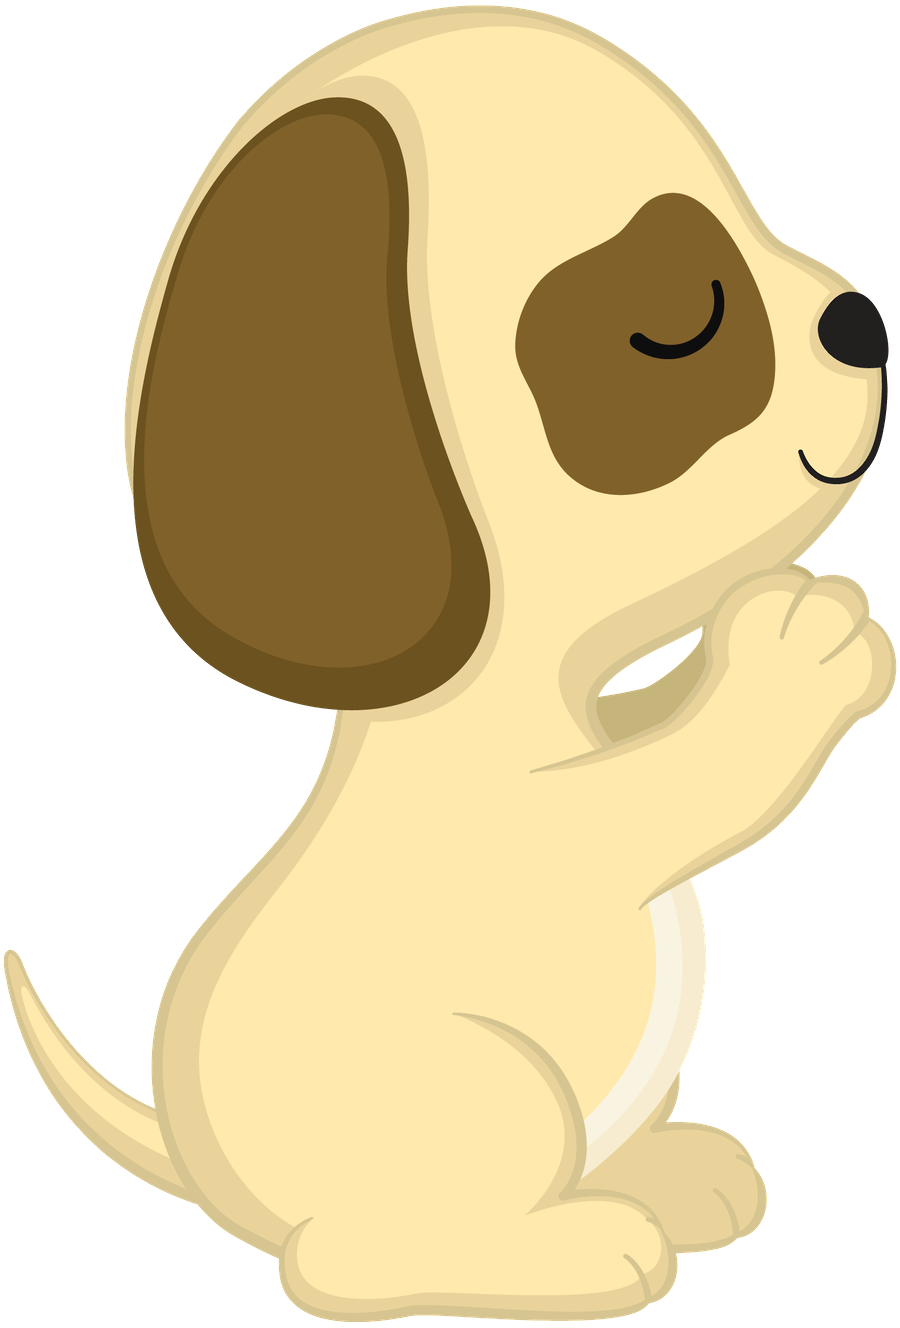 Angel dog clipart png free Minus - Say Hello! | апликации | Pinterest png free